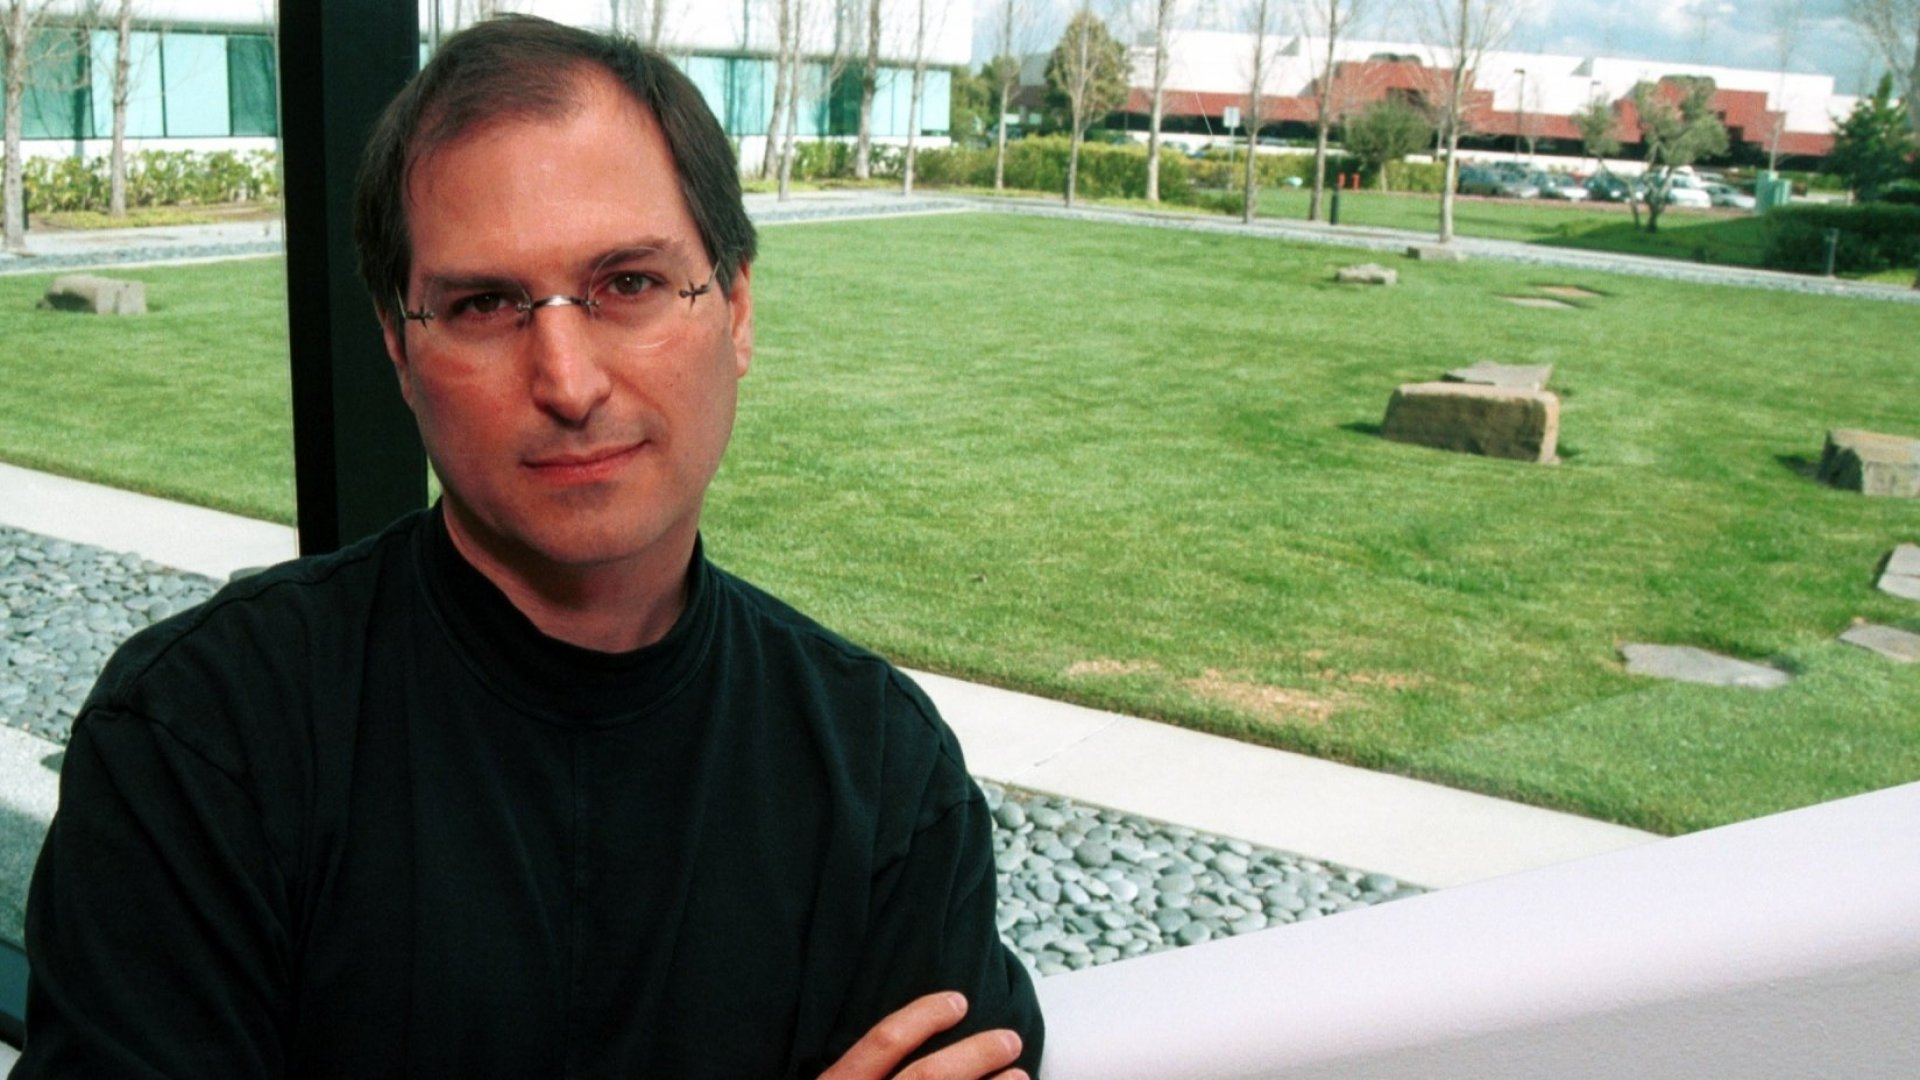 Steve Jobs, photographed in 1996.